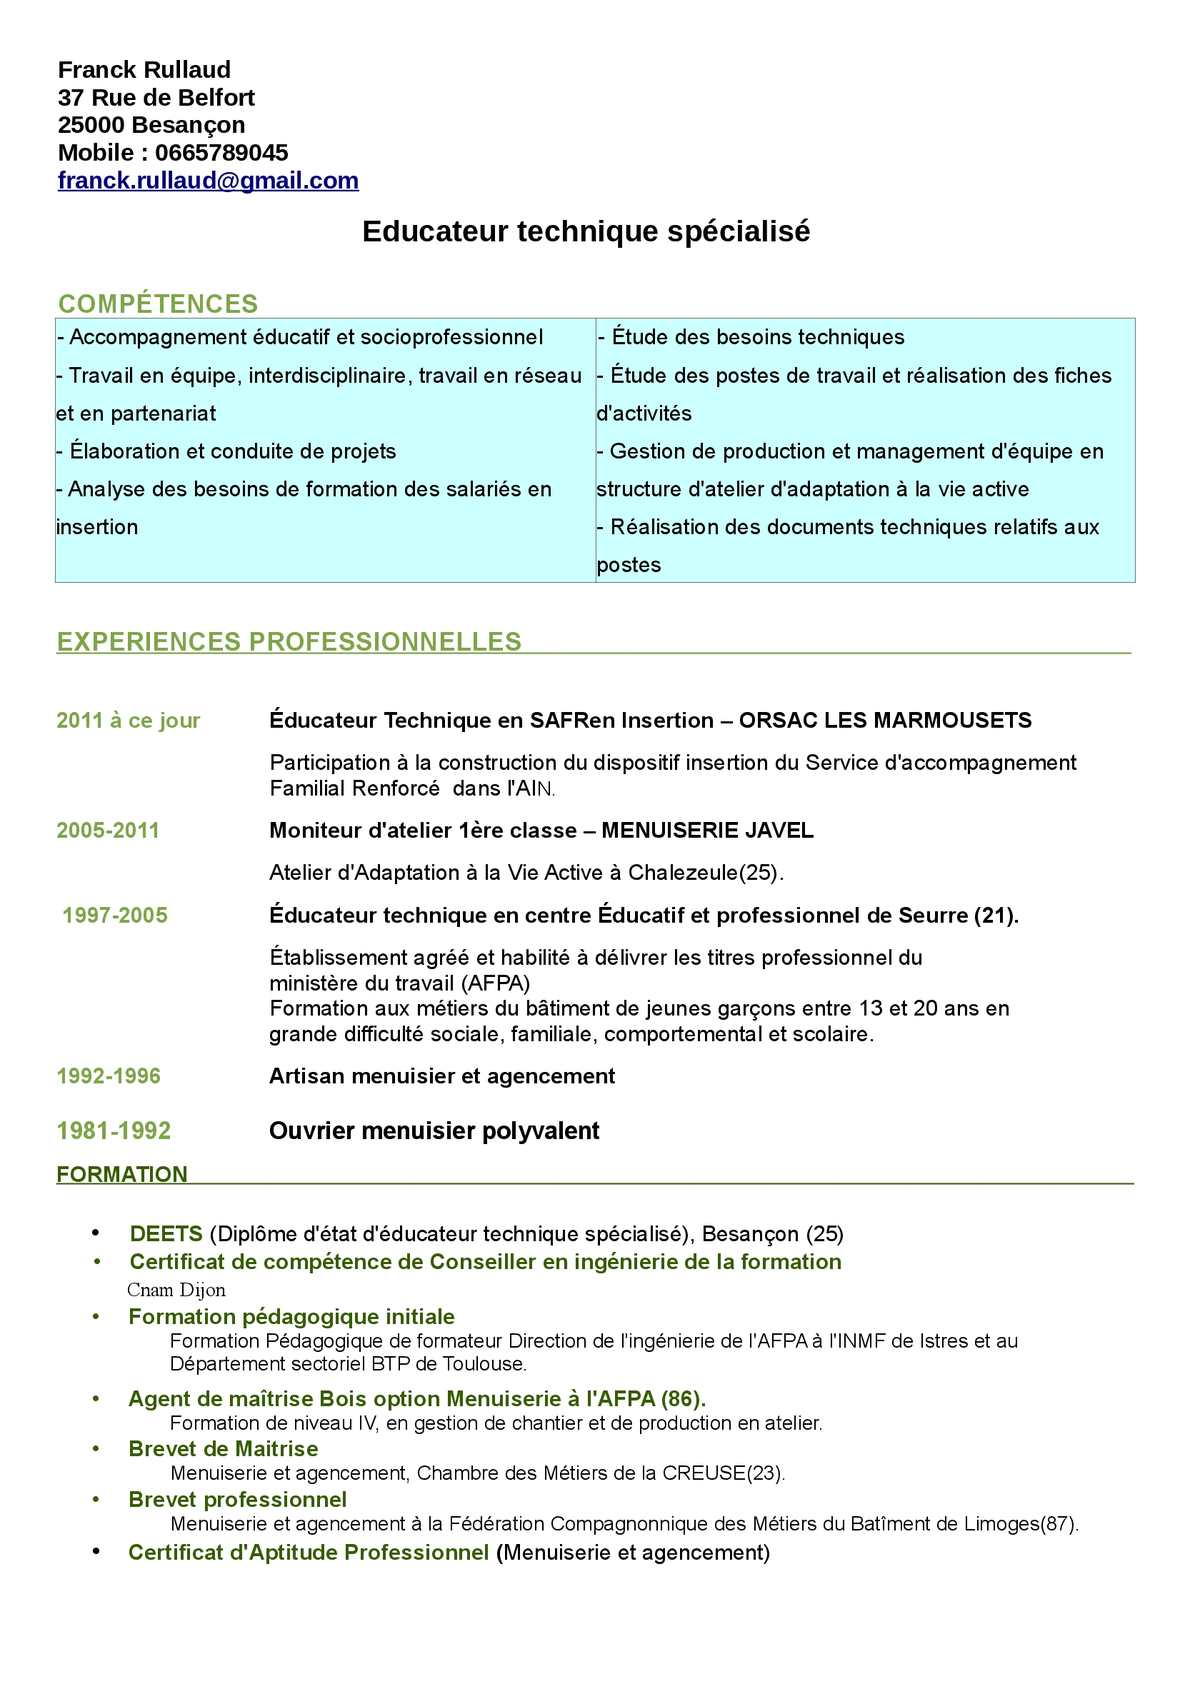 educateur specialise competences cv